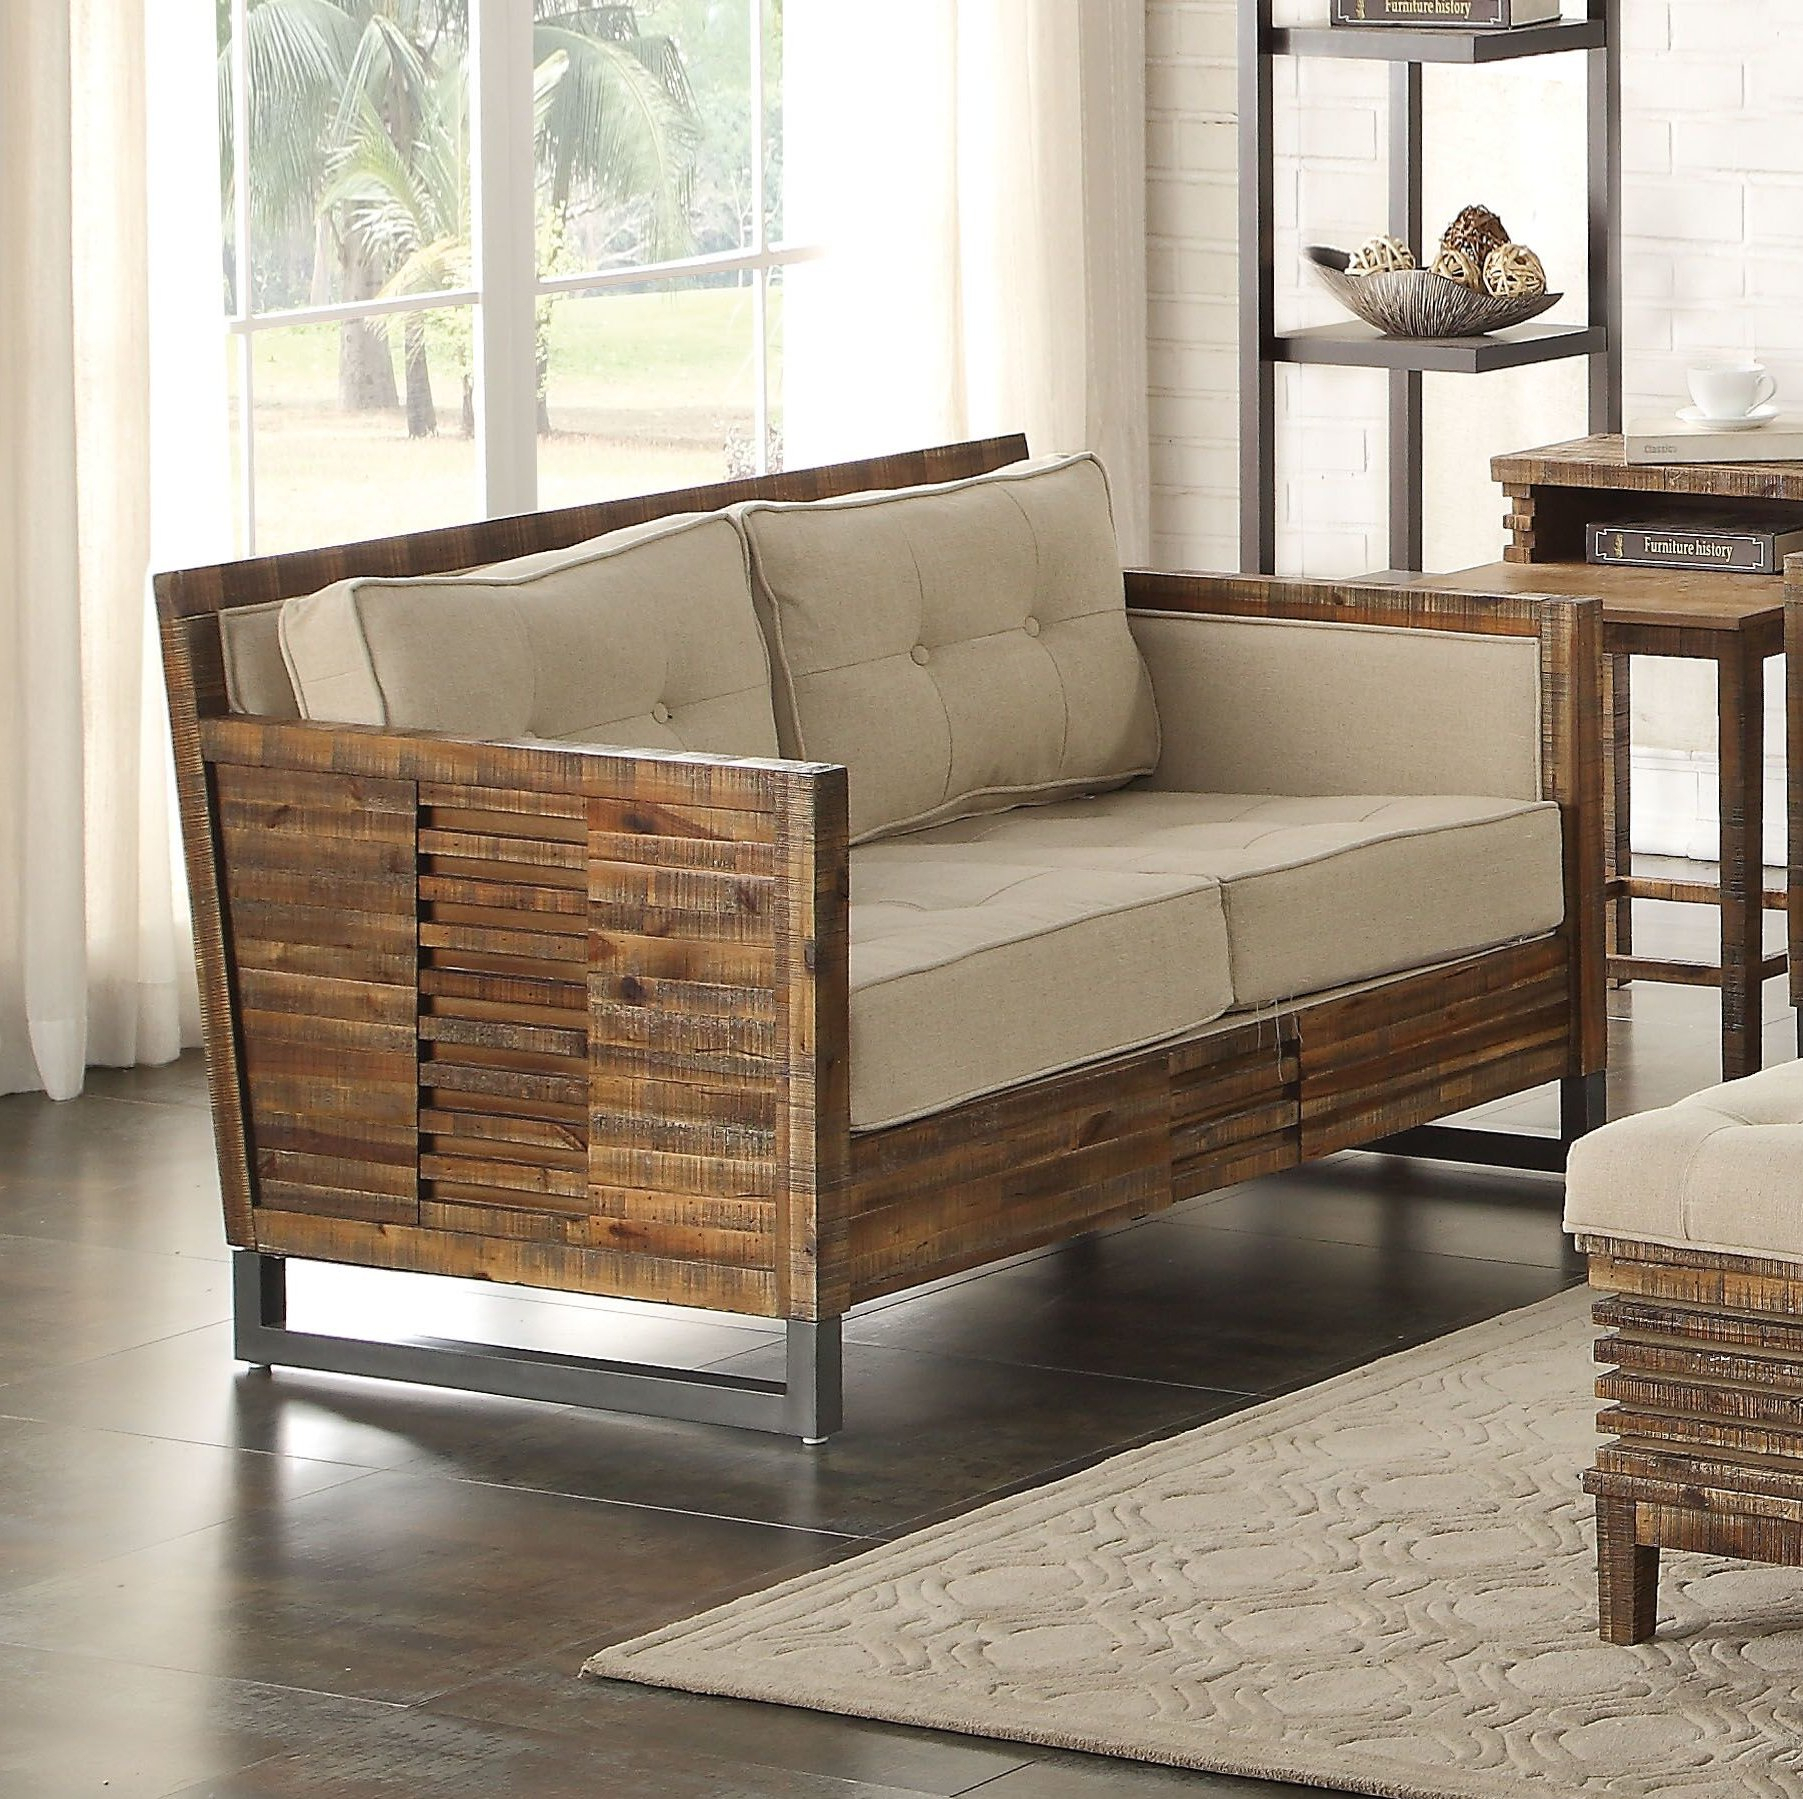 Foundry Select Rory Loveseat | Wayfair With Regard To Rory Sofa Chairs (Image 5 of 25)